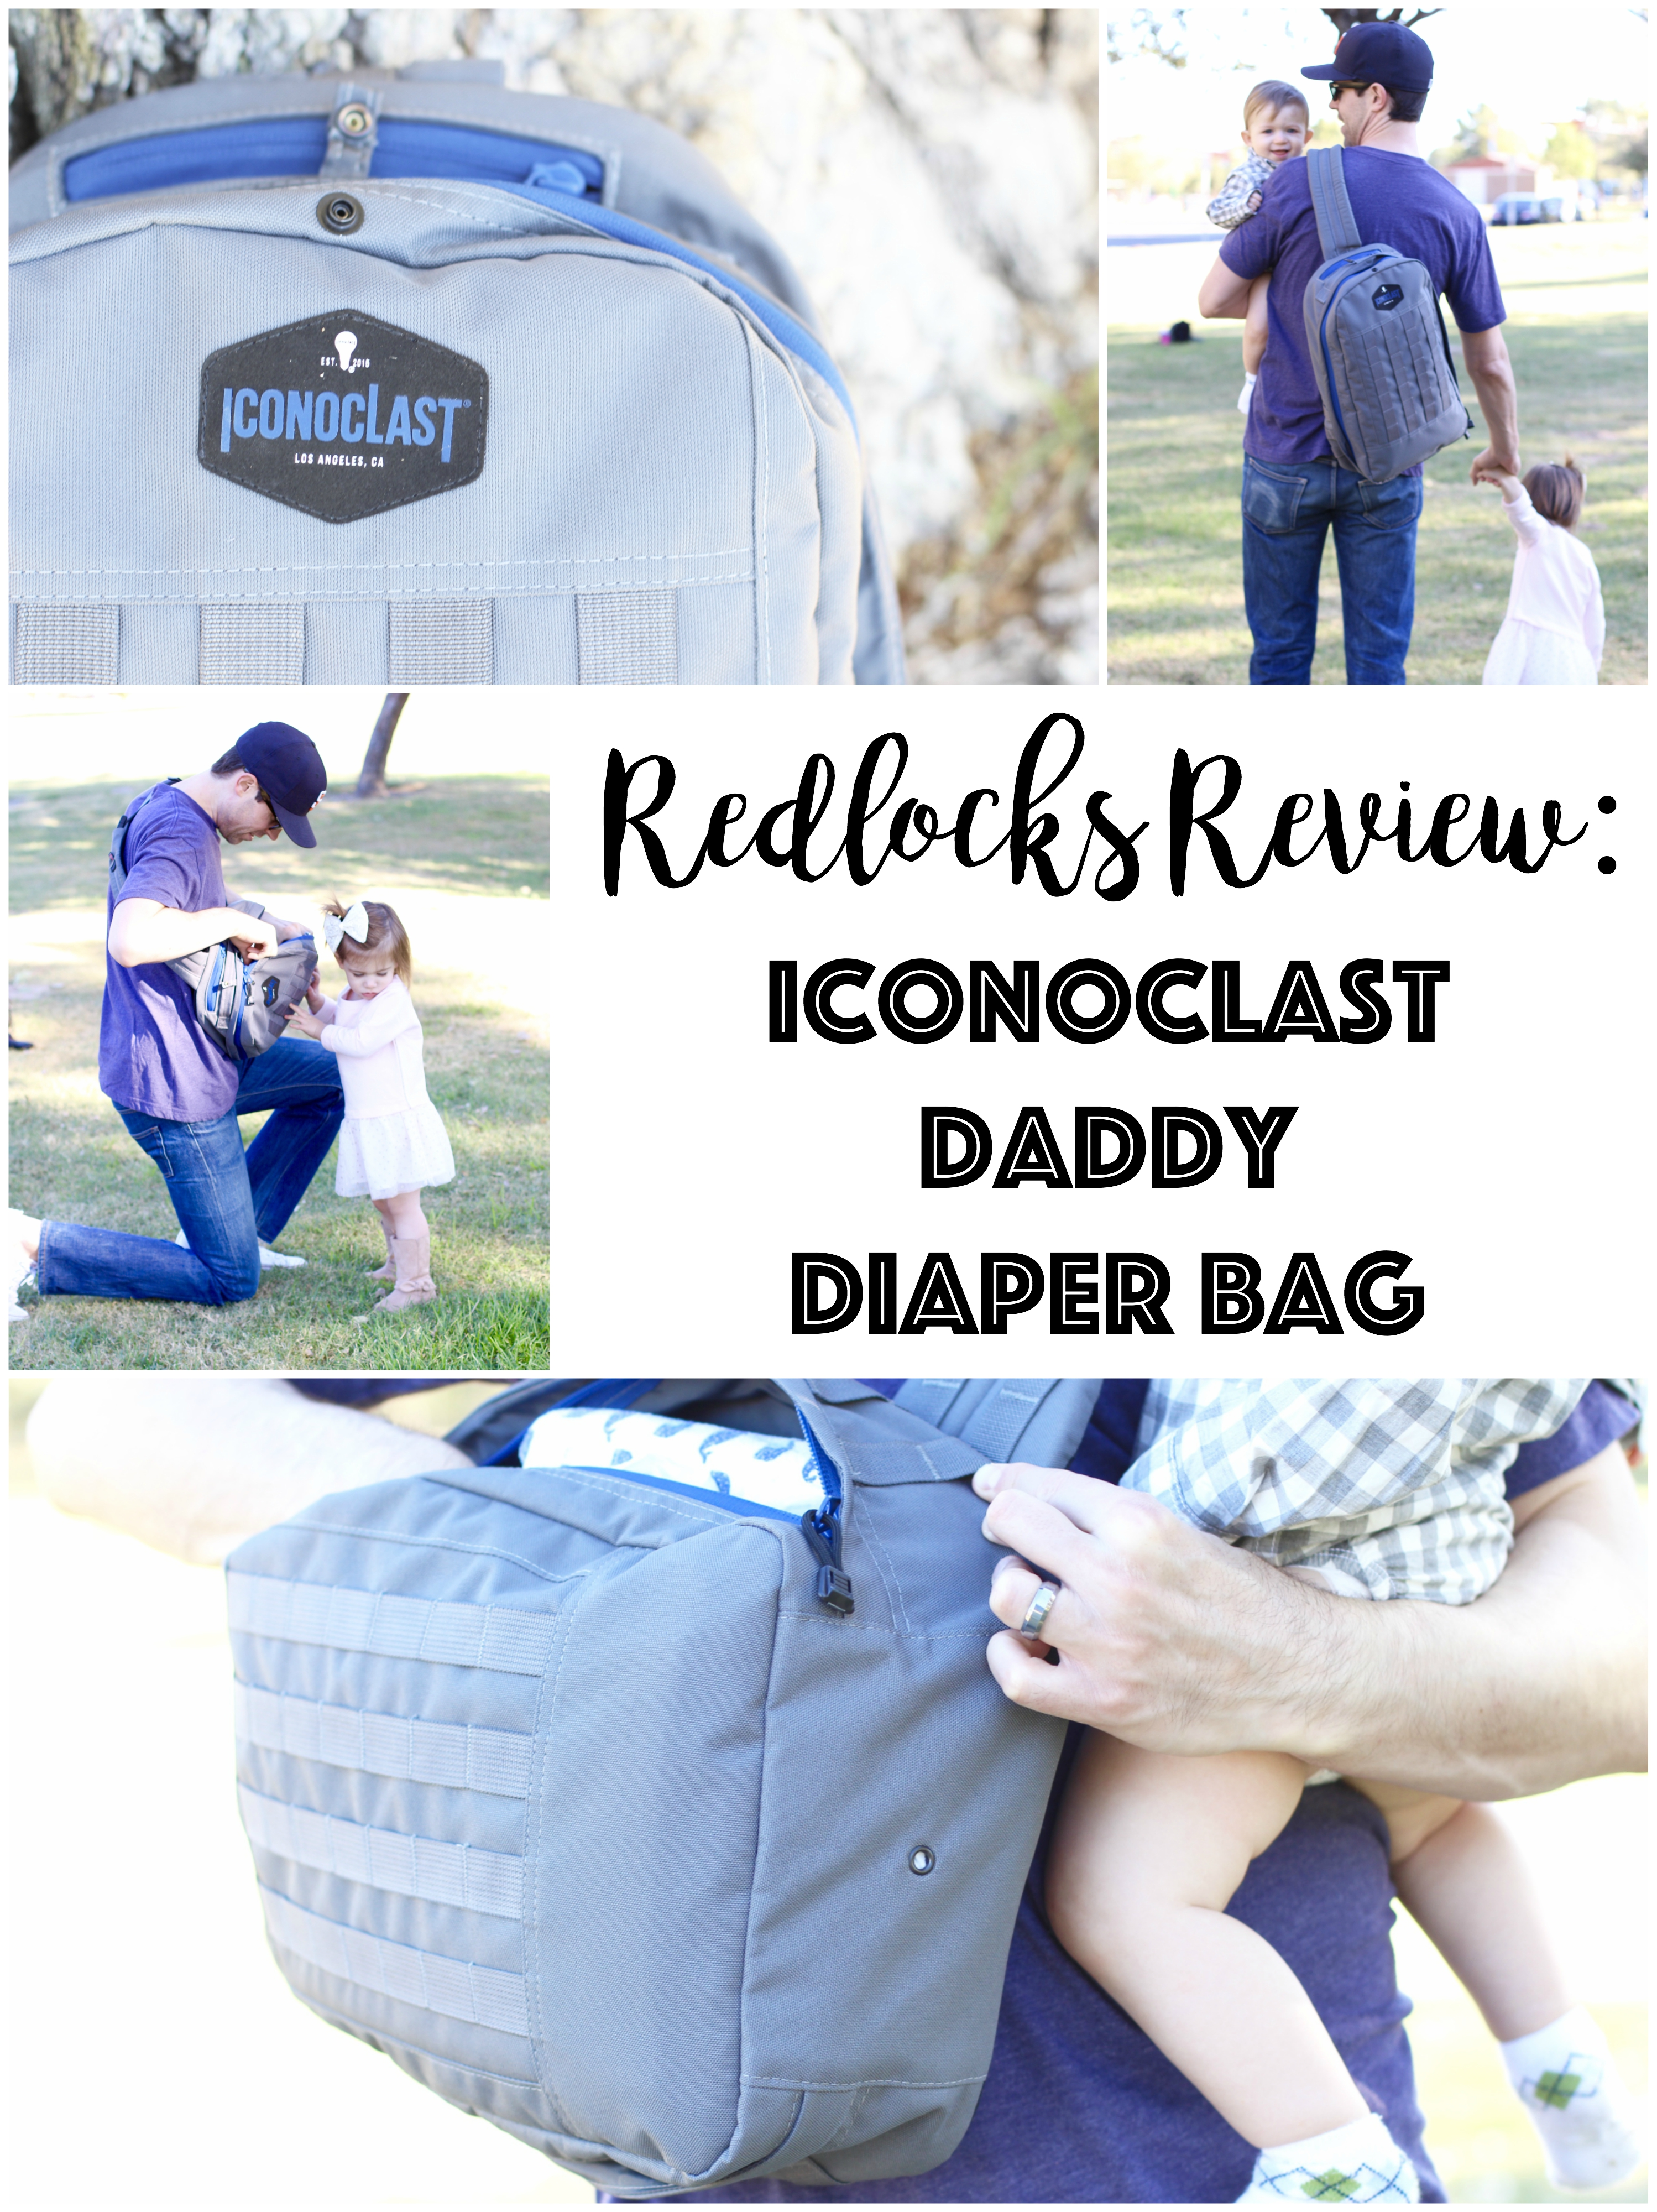 Redlocks Review: Iconoclast Dad Bags